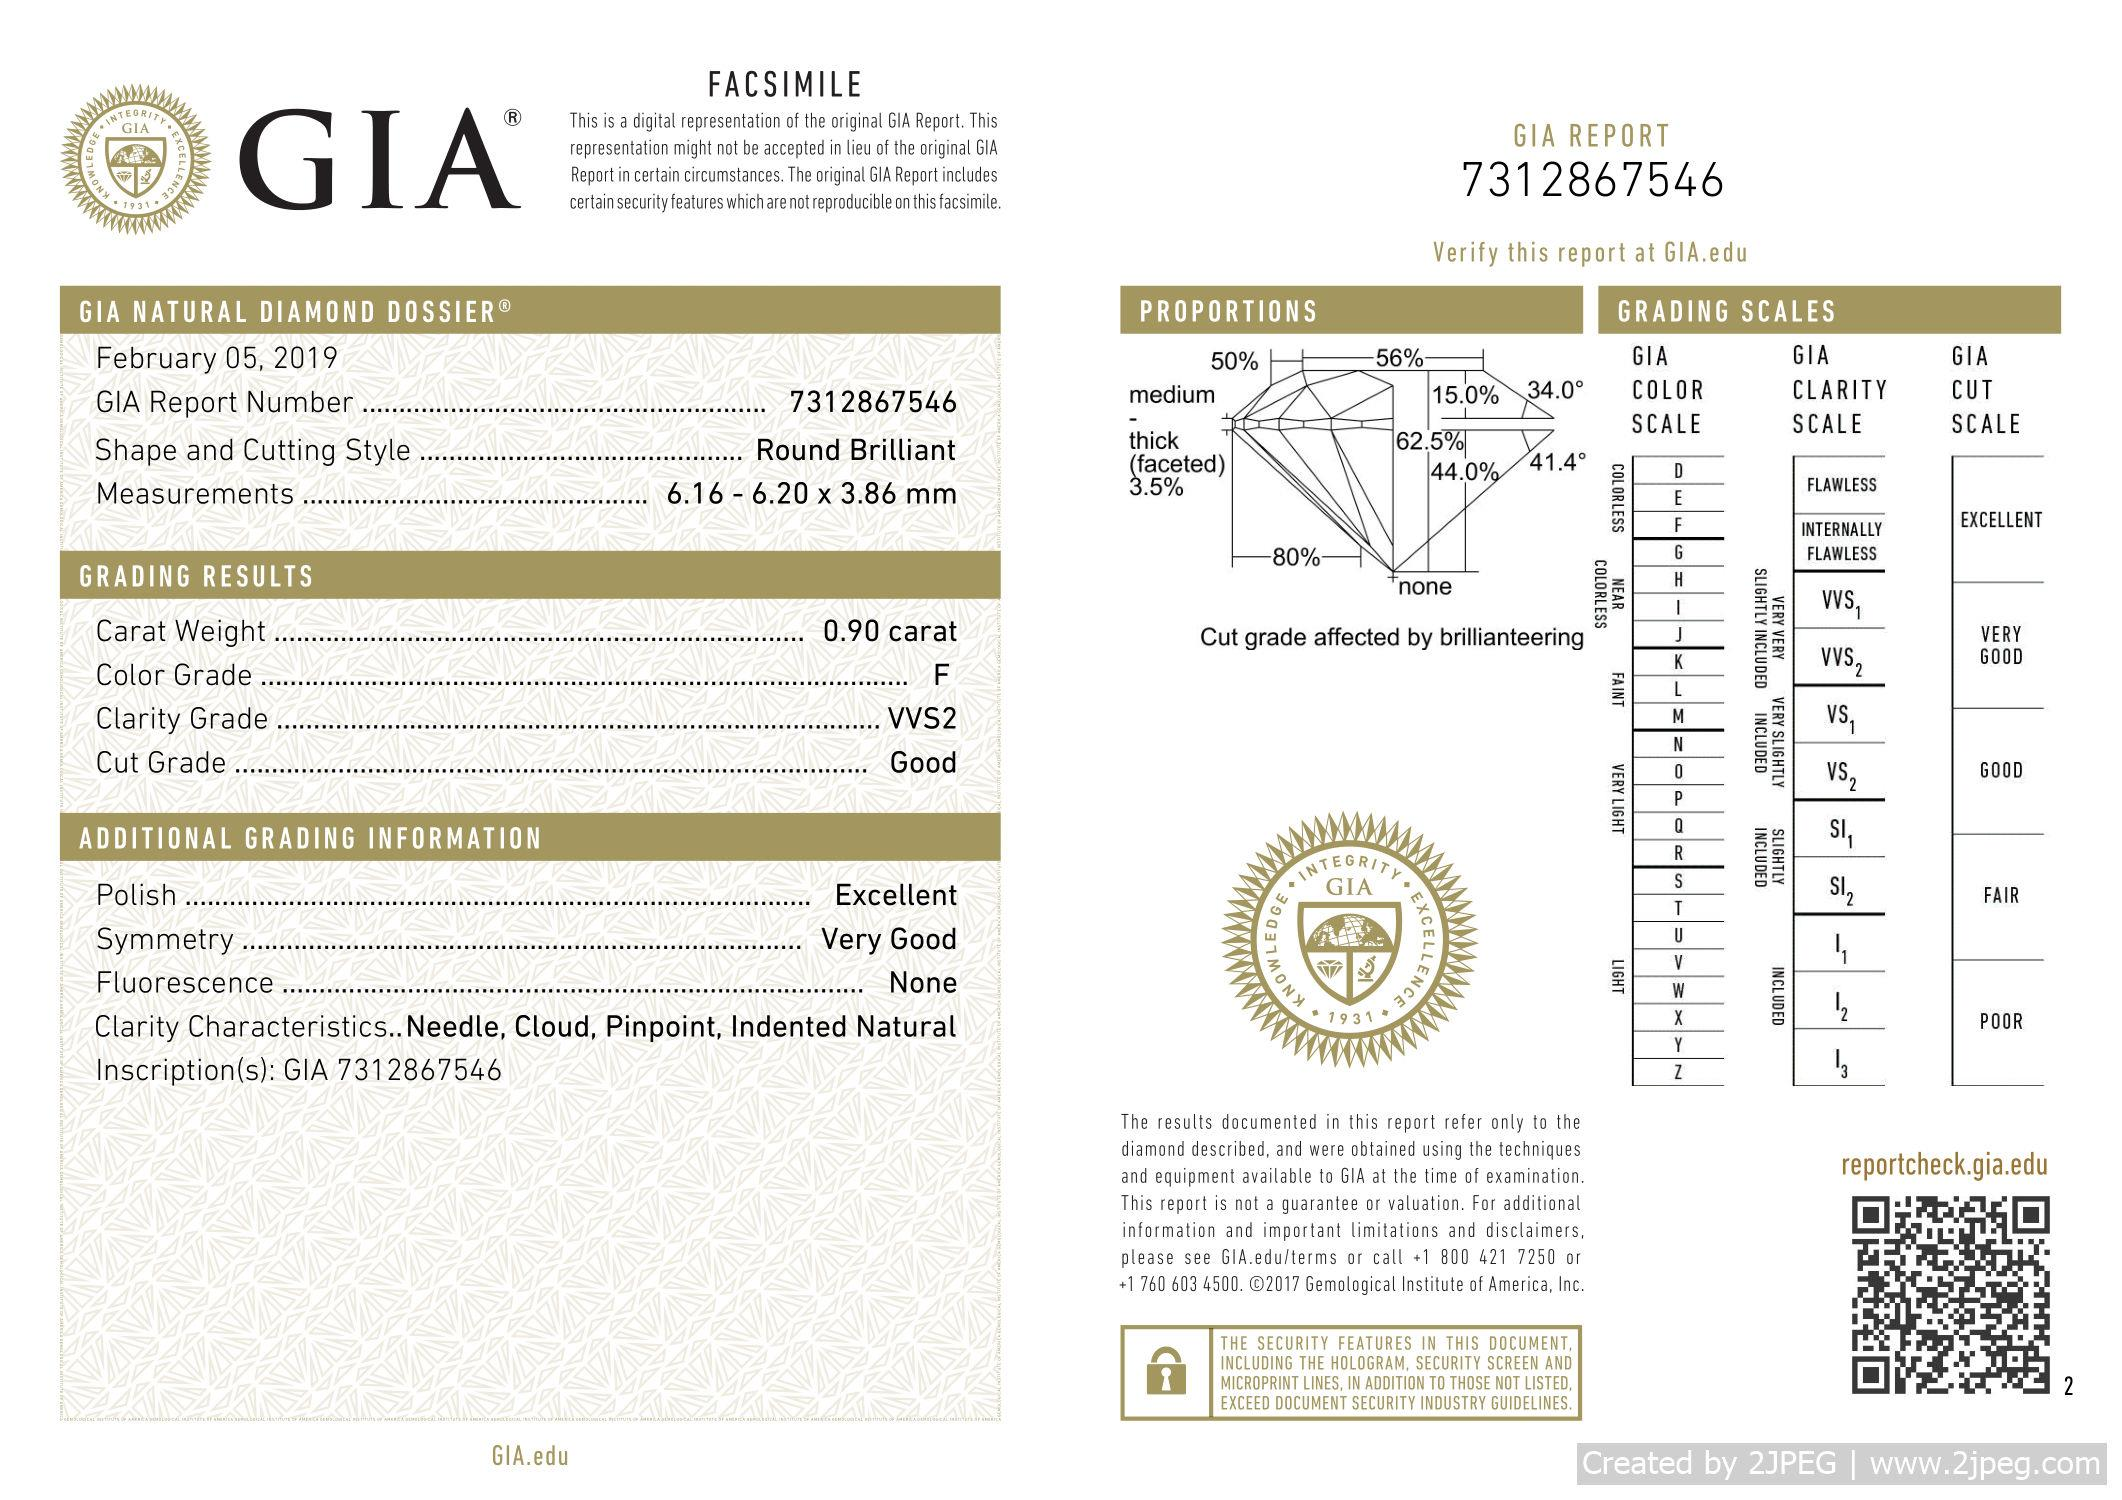 This is a 0.90 carat round shape, F color, VVS2 clarity natural diamond accompanied by a GIA grading report.